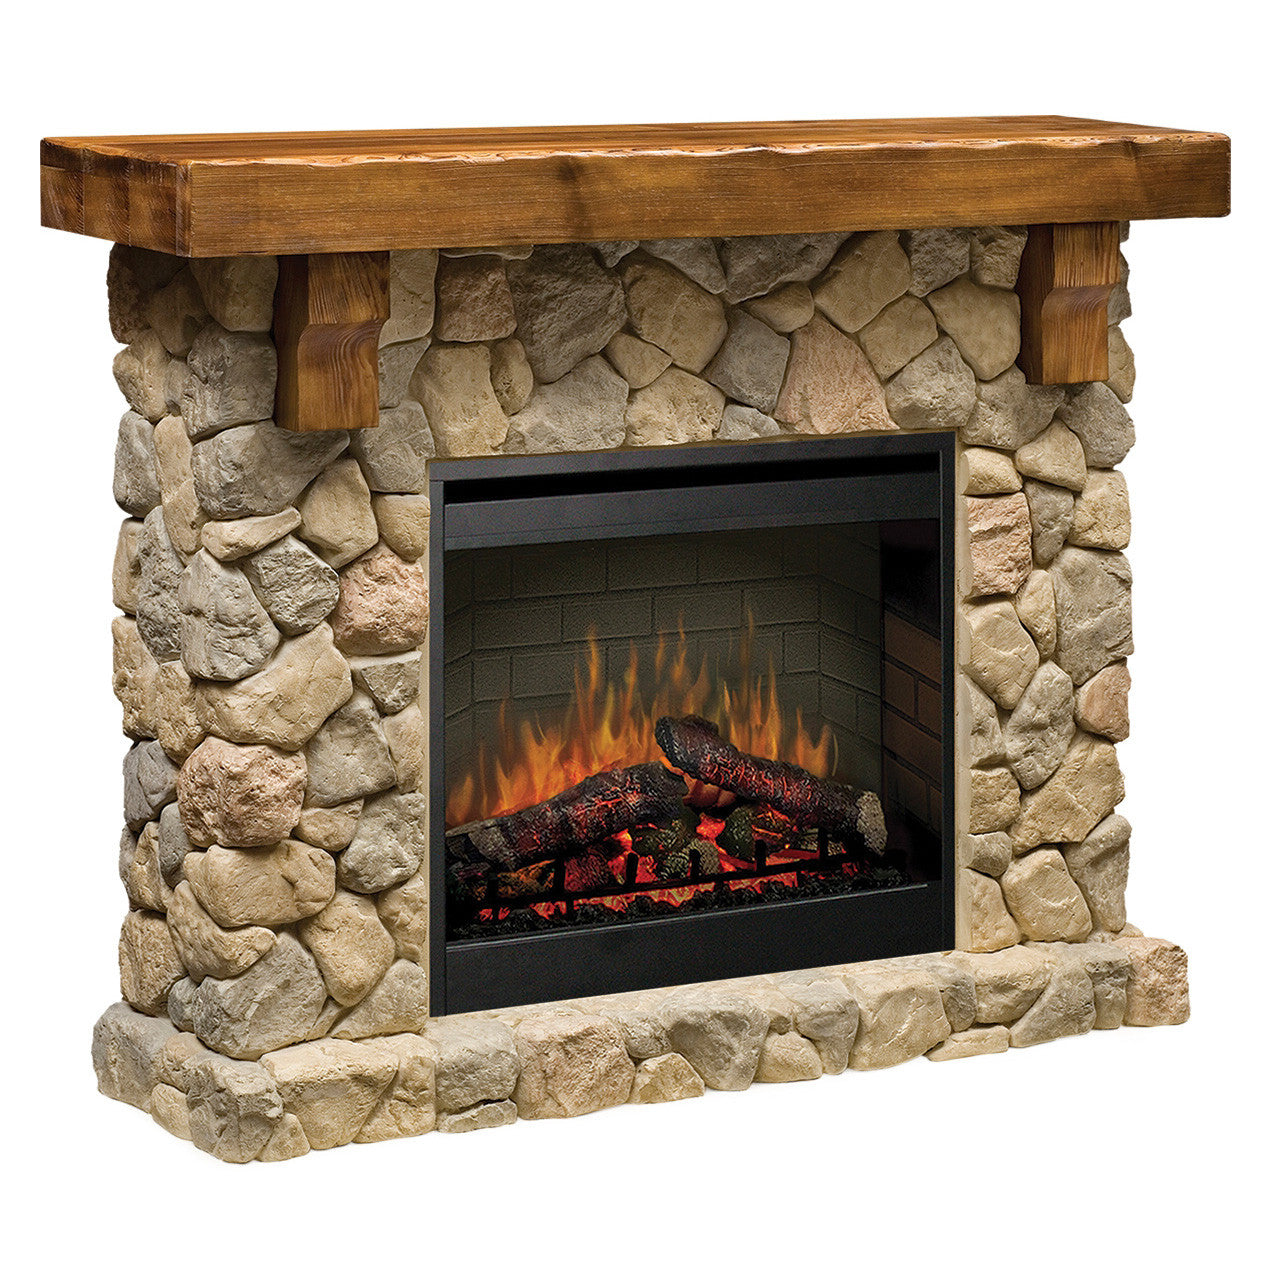 Pleasing Dimplex Fieldstone Electric Fireplace Home Interior And Landscaping Ologienasavecom